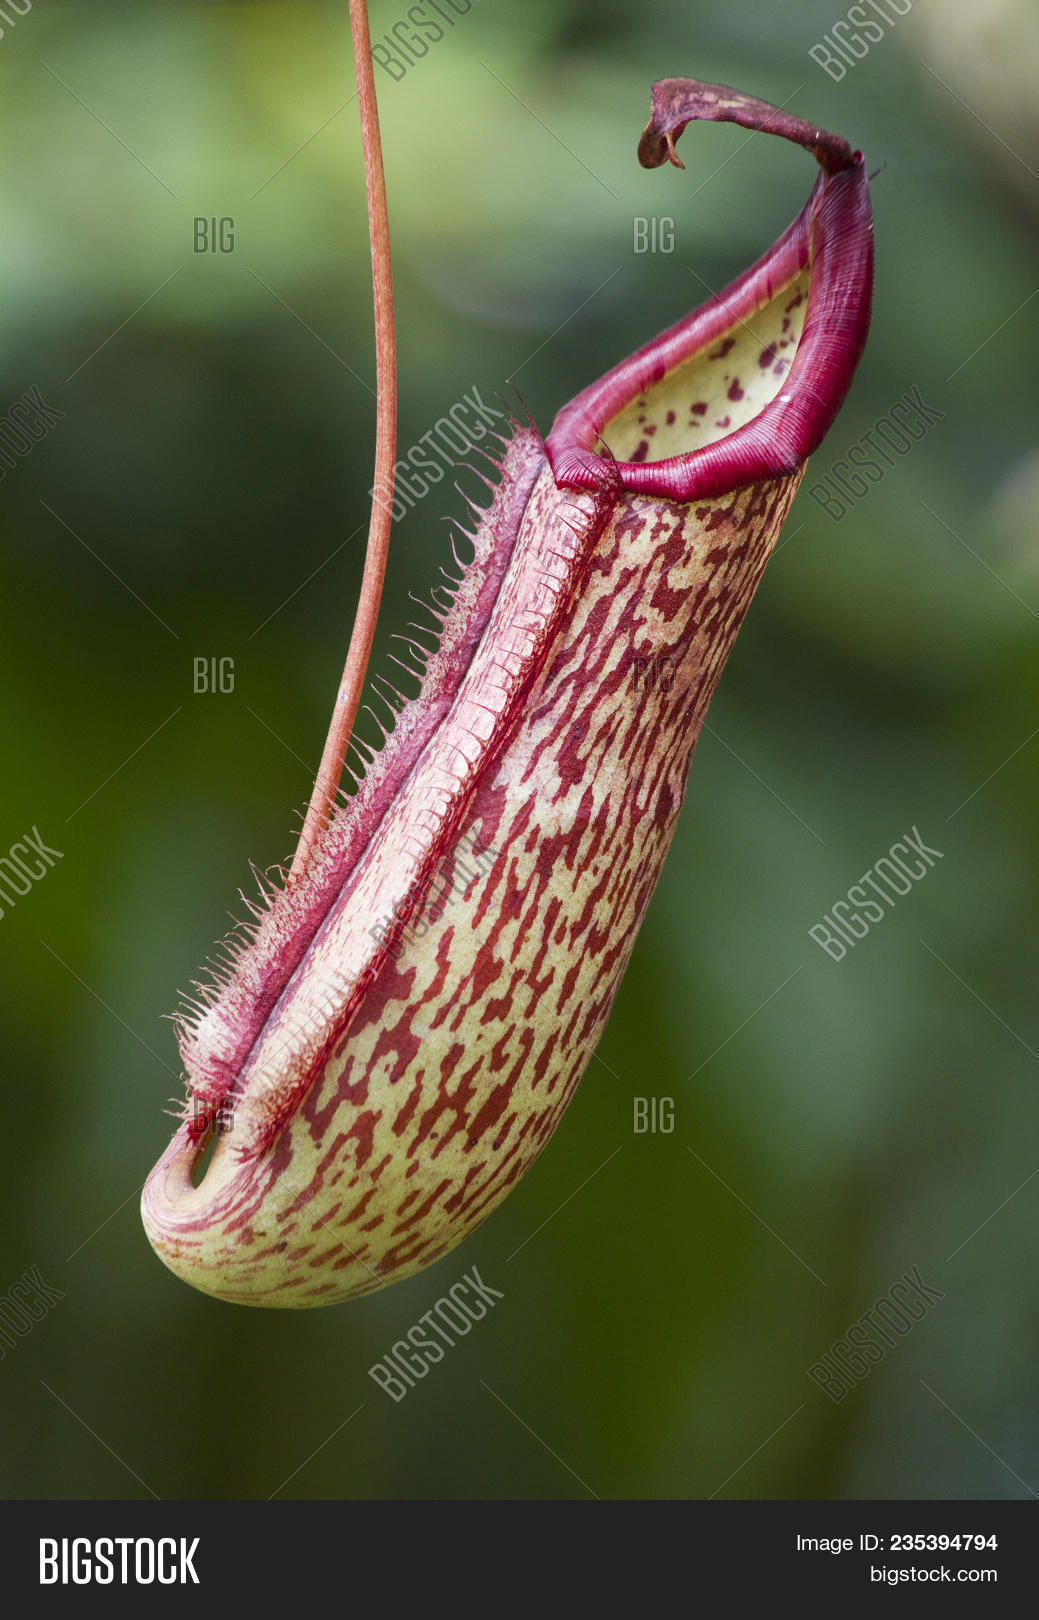 Nepenthes Tropical Image Photo Trial Bigstock 1039x1620